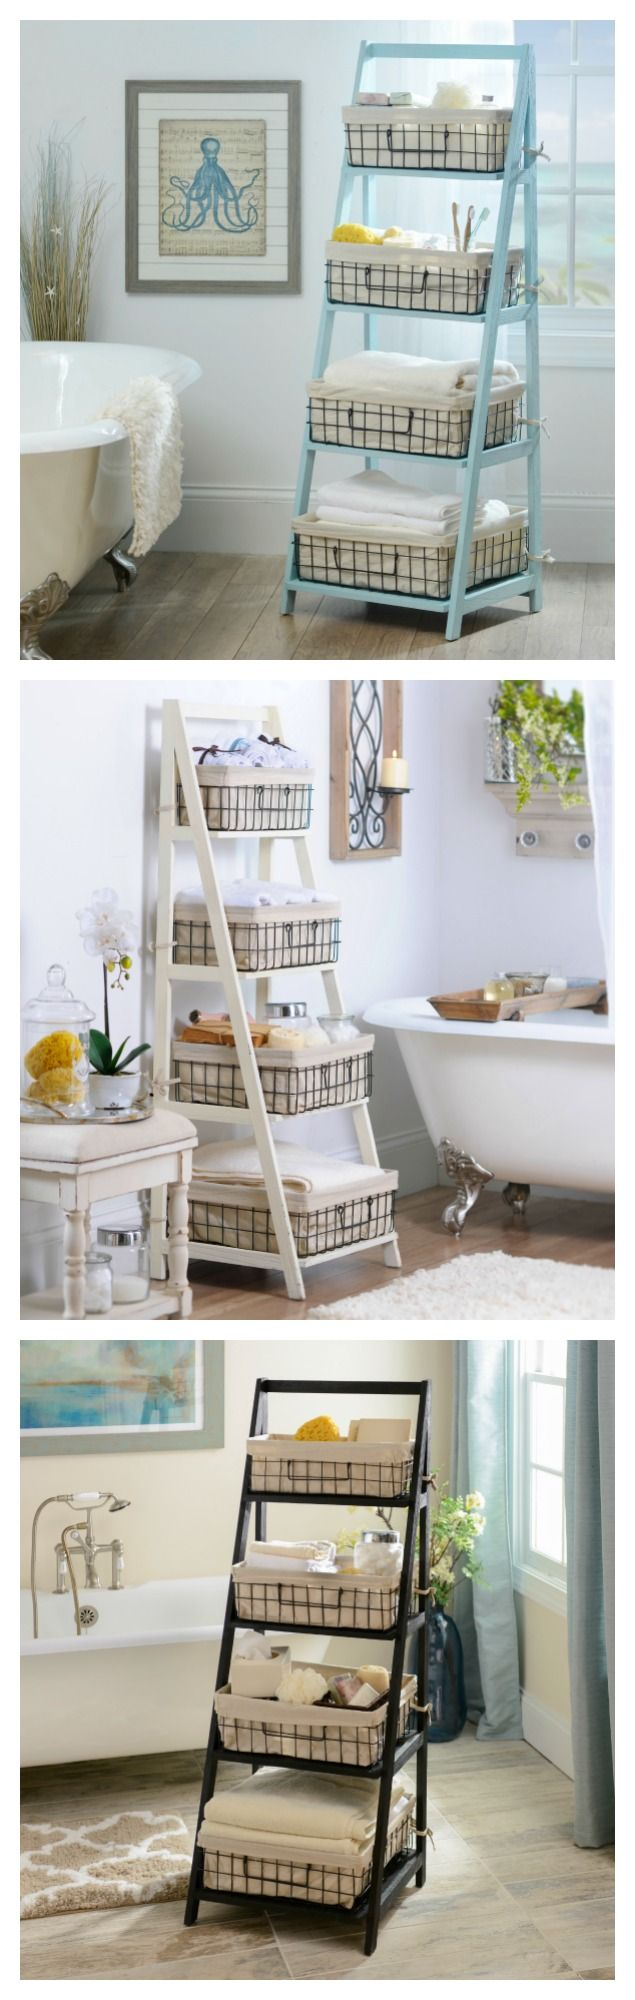 Towel Storage Ideas For Bathroom Pleasing Best 25 Bathroom Towel Storage Ideas On Pinterest  Towel Storage Design Ideas